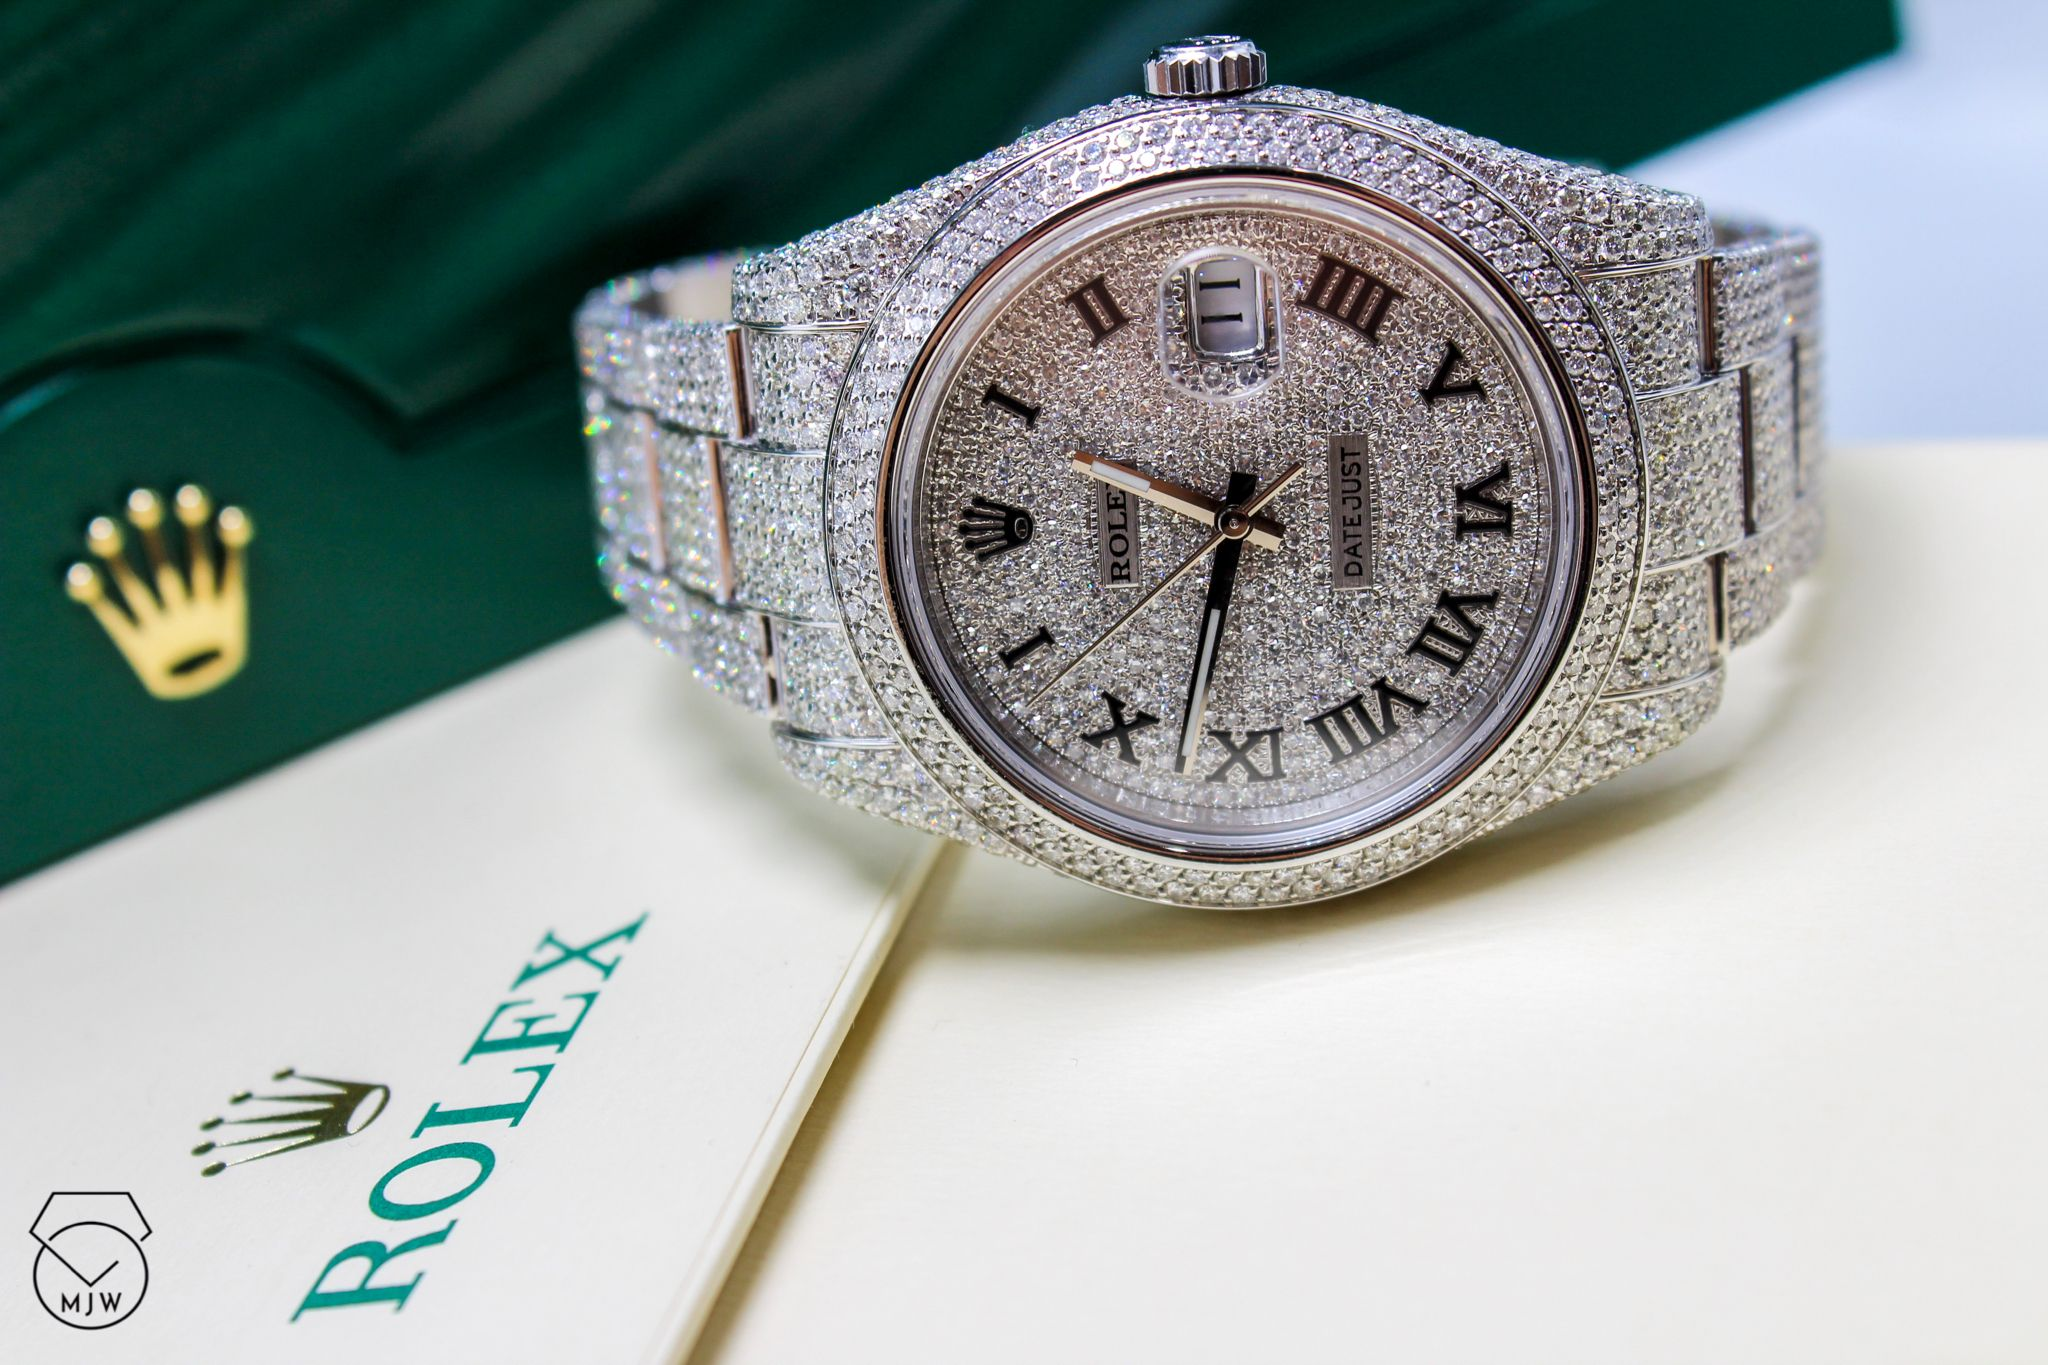 Rolex Stainless Steel Datejust Full Iced Out Mjwdtla